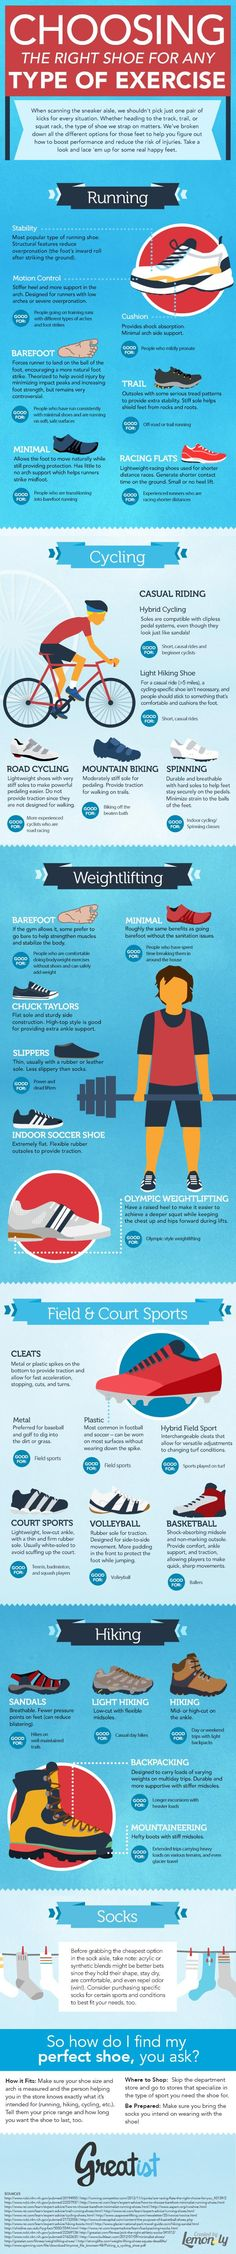 How to Choose the Right Shoes for Any Exercise